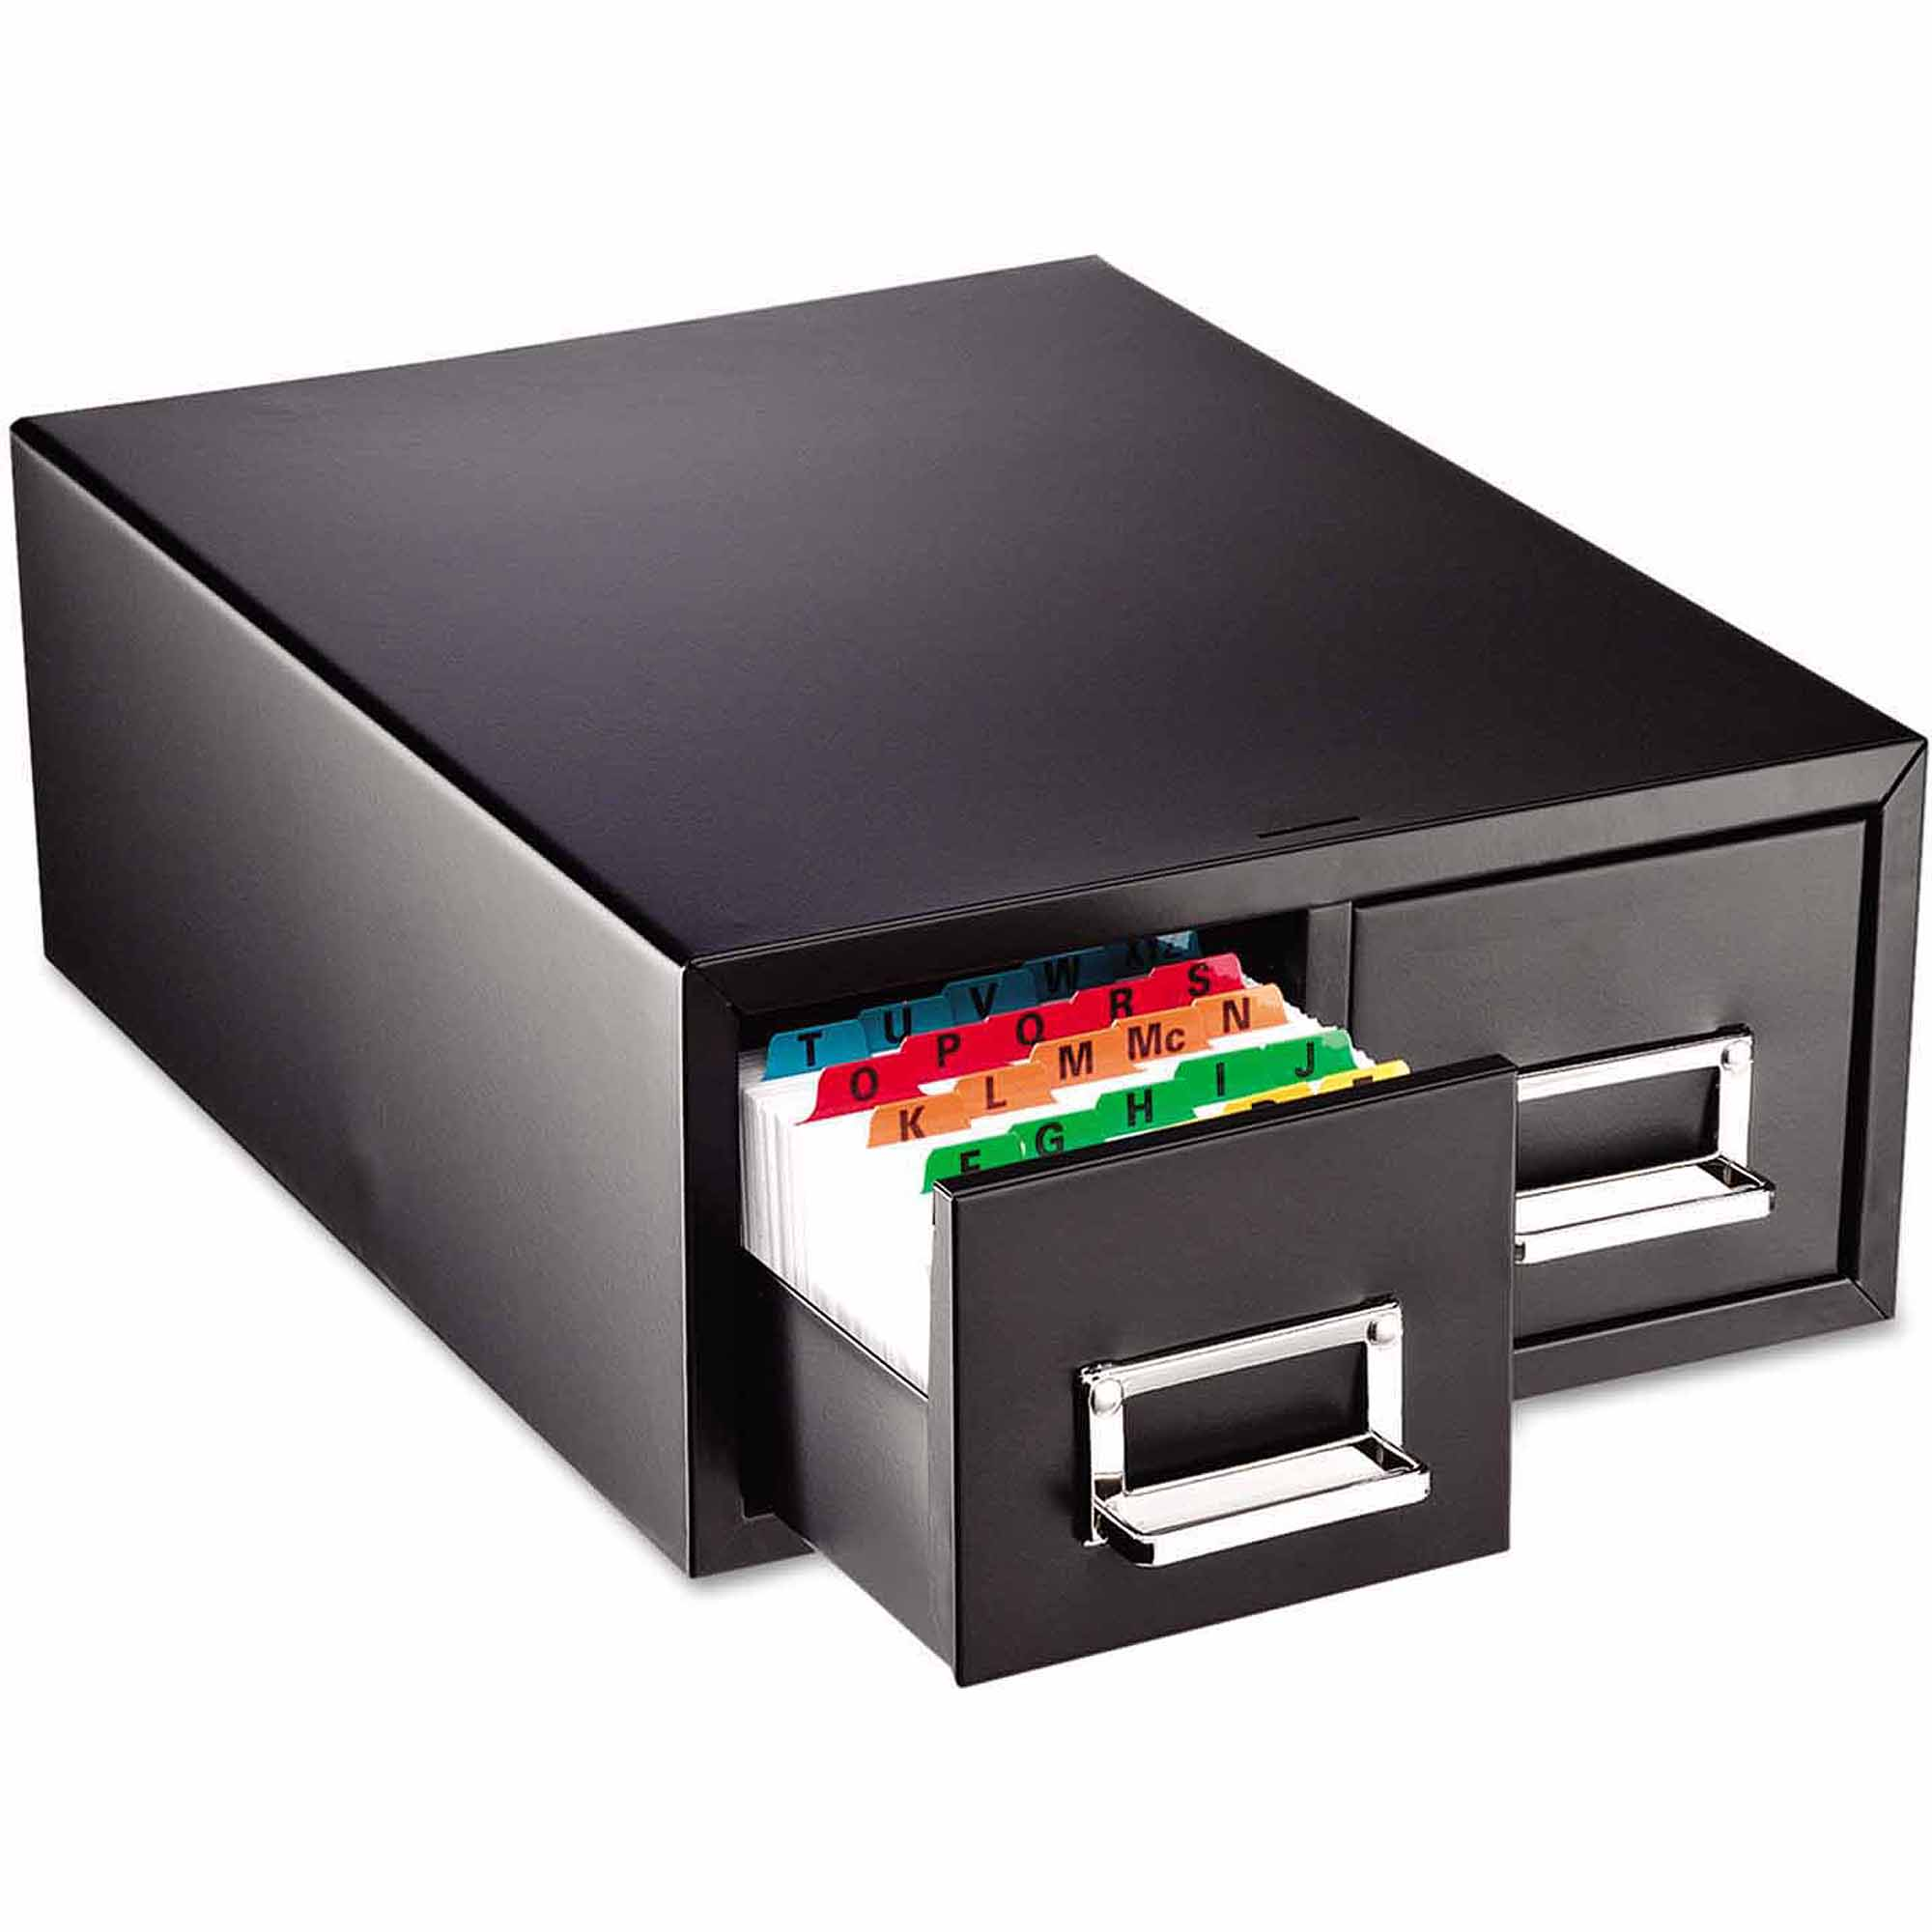 "SteelMaster Drawer Card Cabinet, Holds 3,000 4"" x 6"" cards"